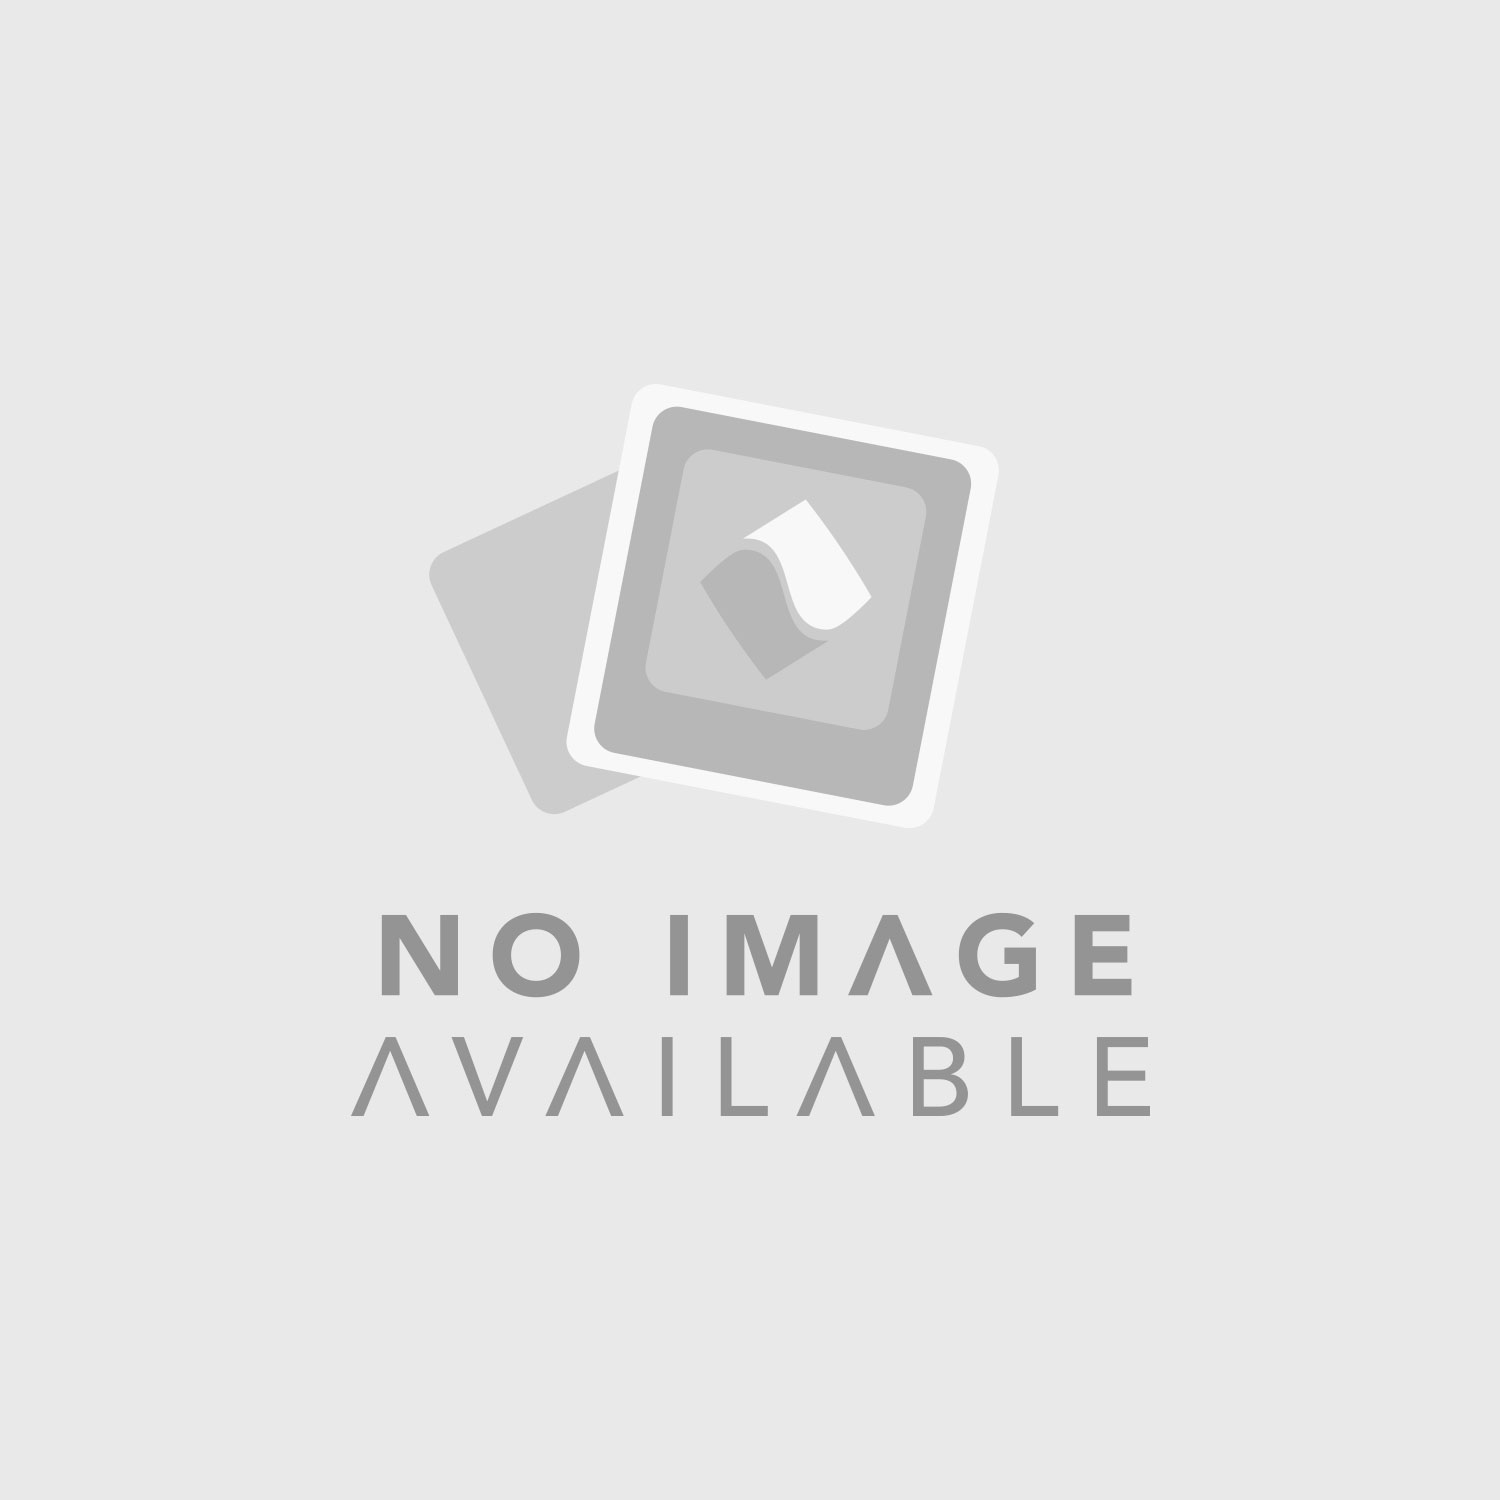 Avid Pro Tools 1-Year Subscription Upgrade/Reinstatement (Download, Student/Teacher)